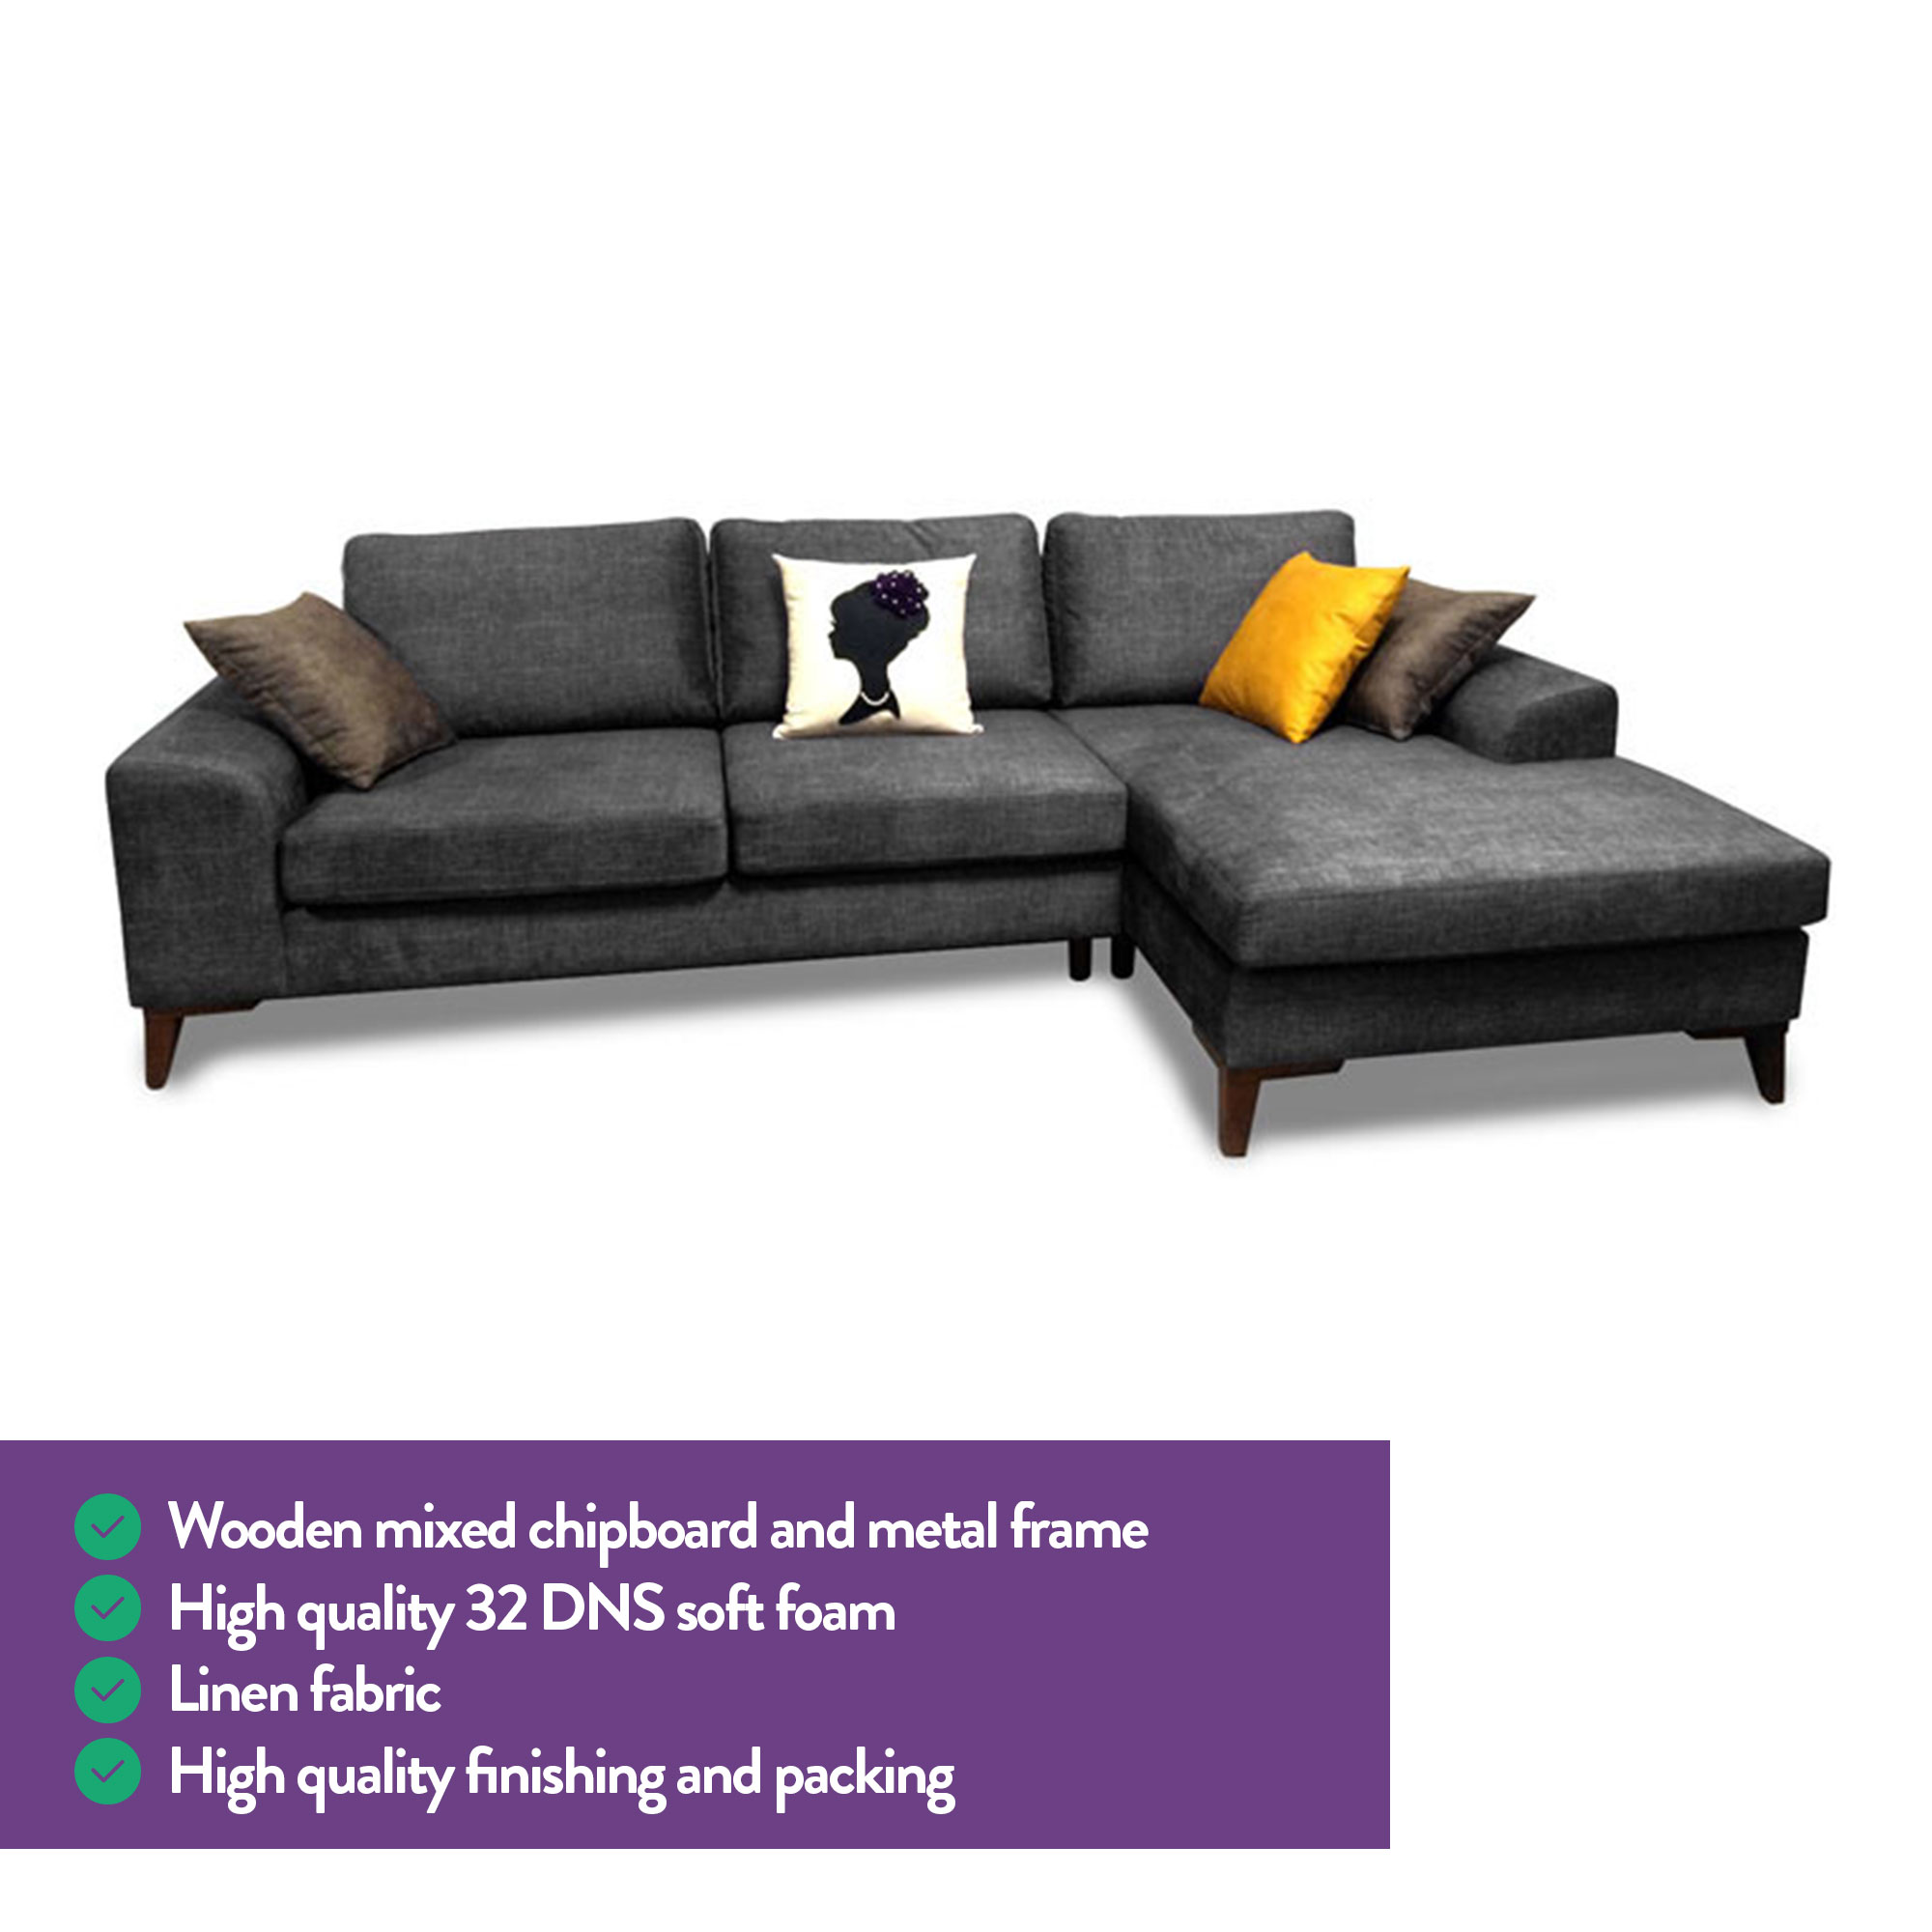 Surprising Mare Collection Halley L Shaped Sectional Sofa Home Designer Goods Download Free Architecture Designs Scobabritishbridgeorg